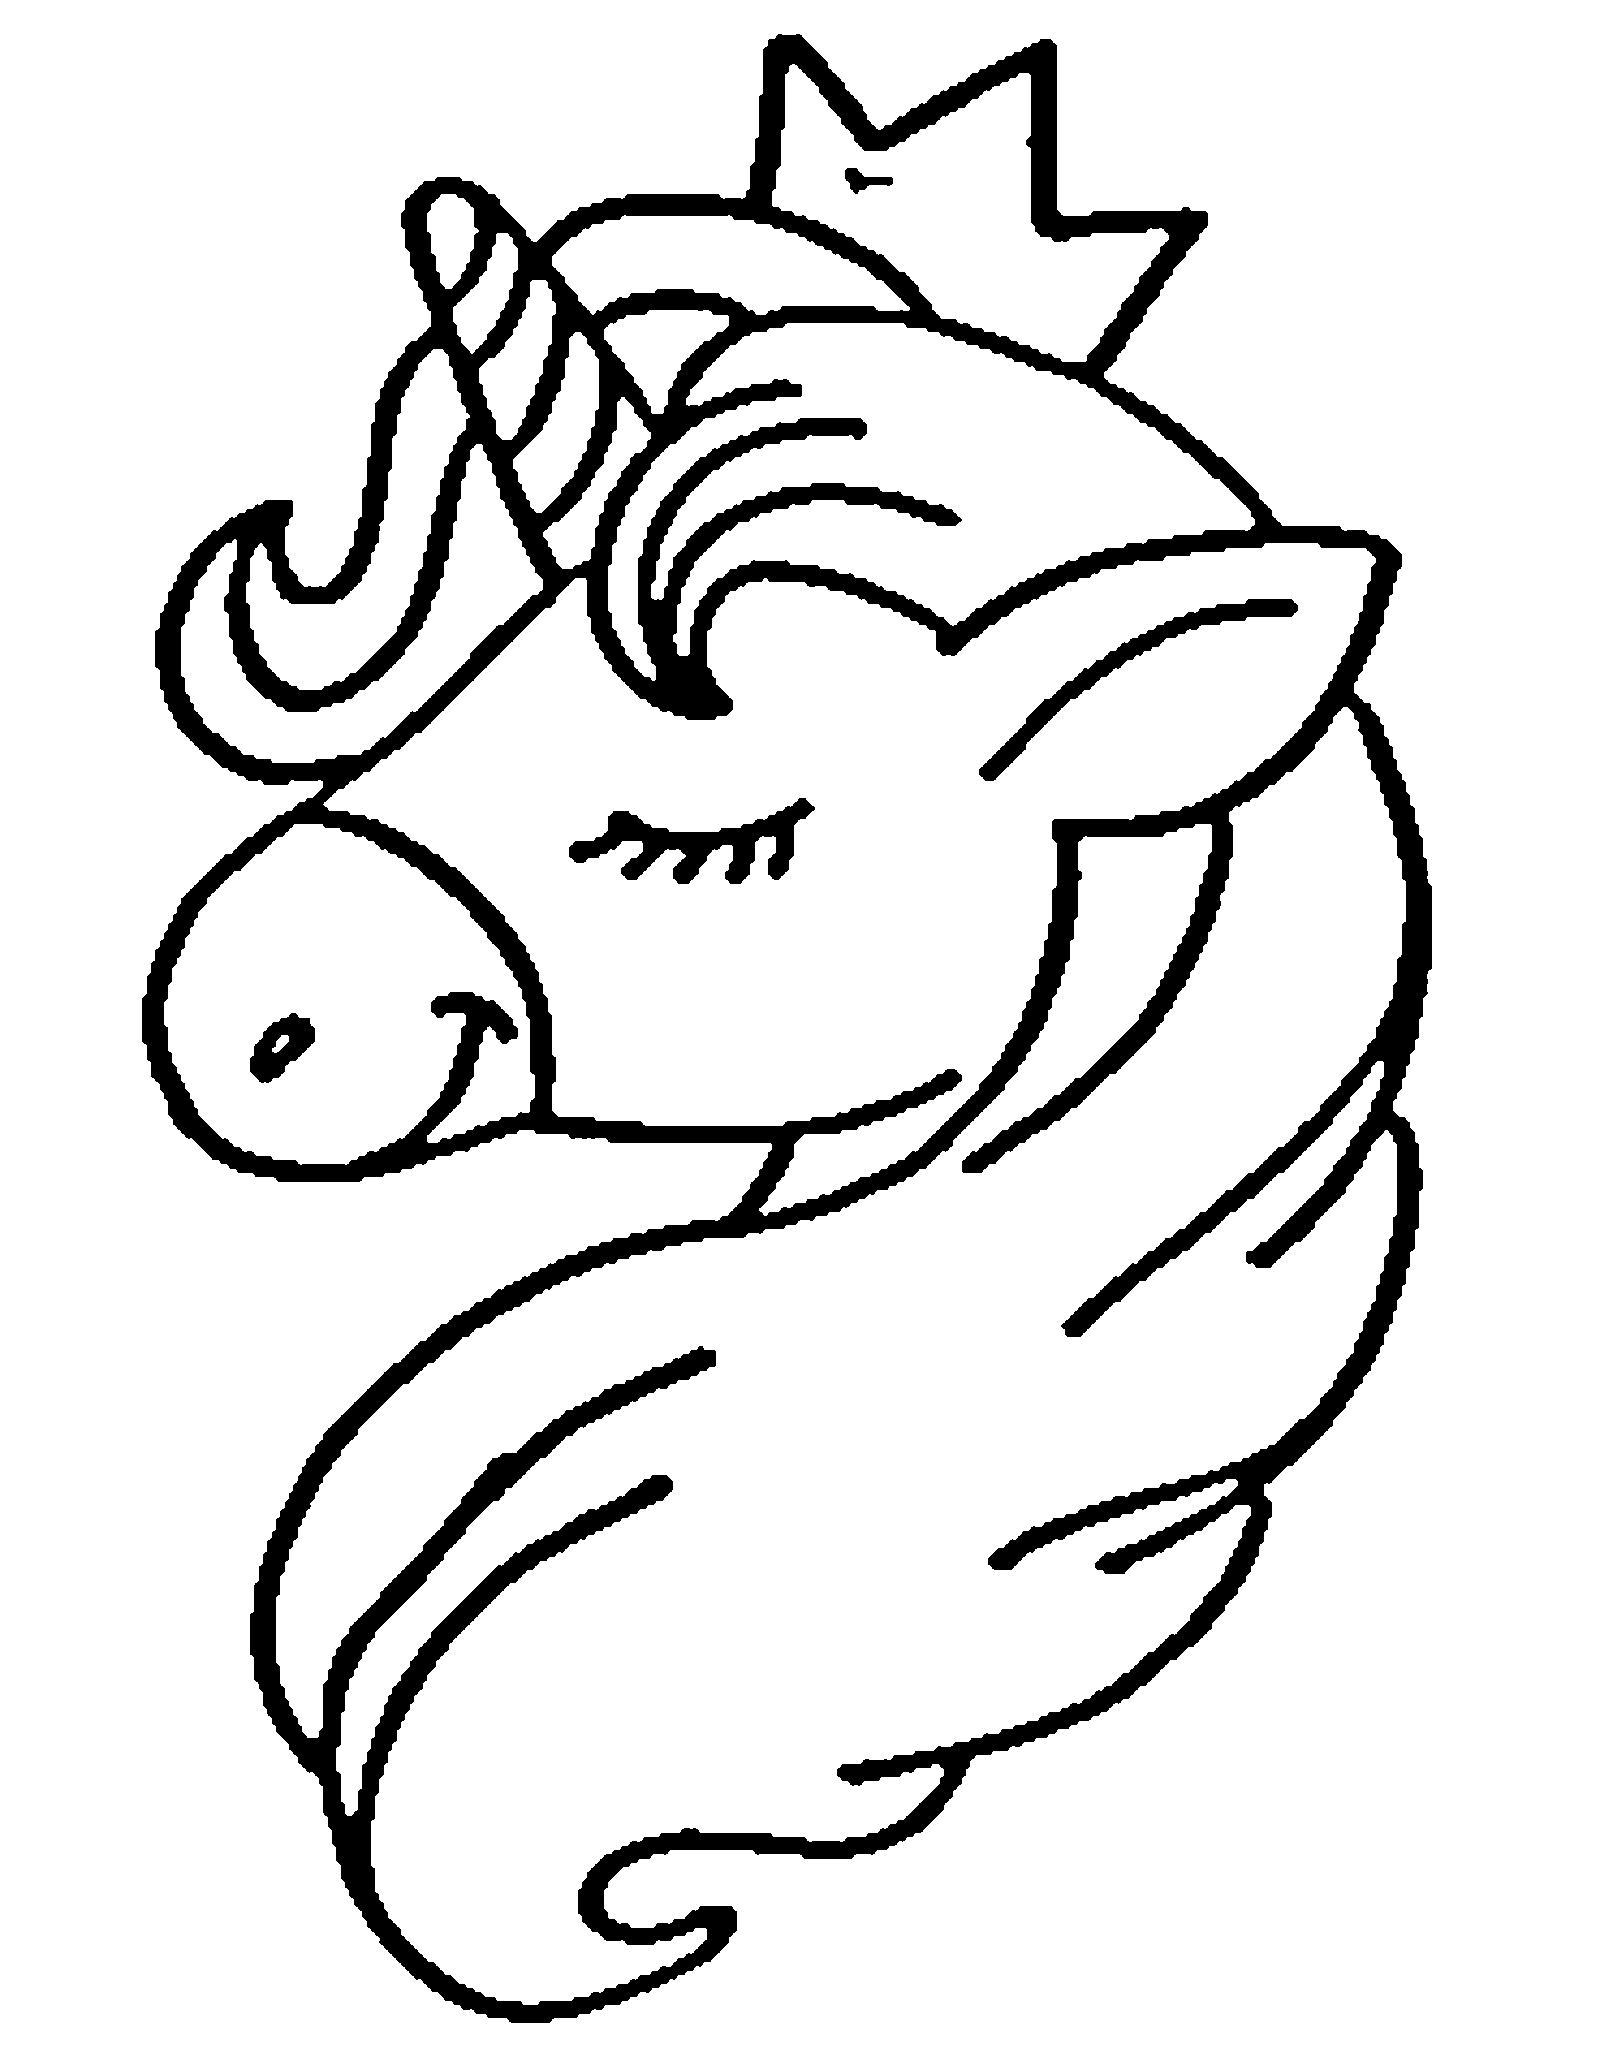 Draw Unicorn Coloring Page